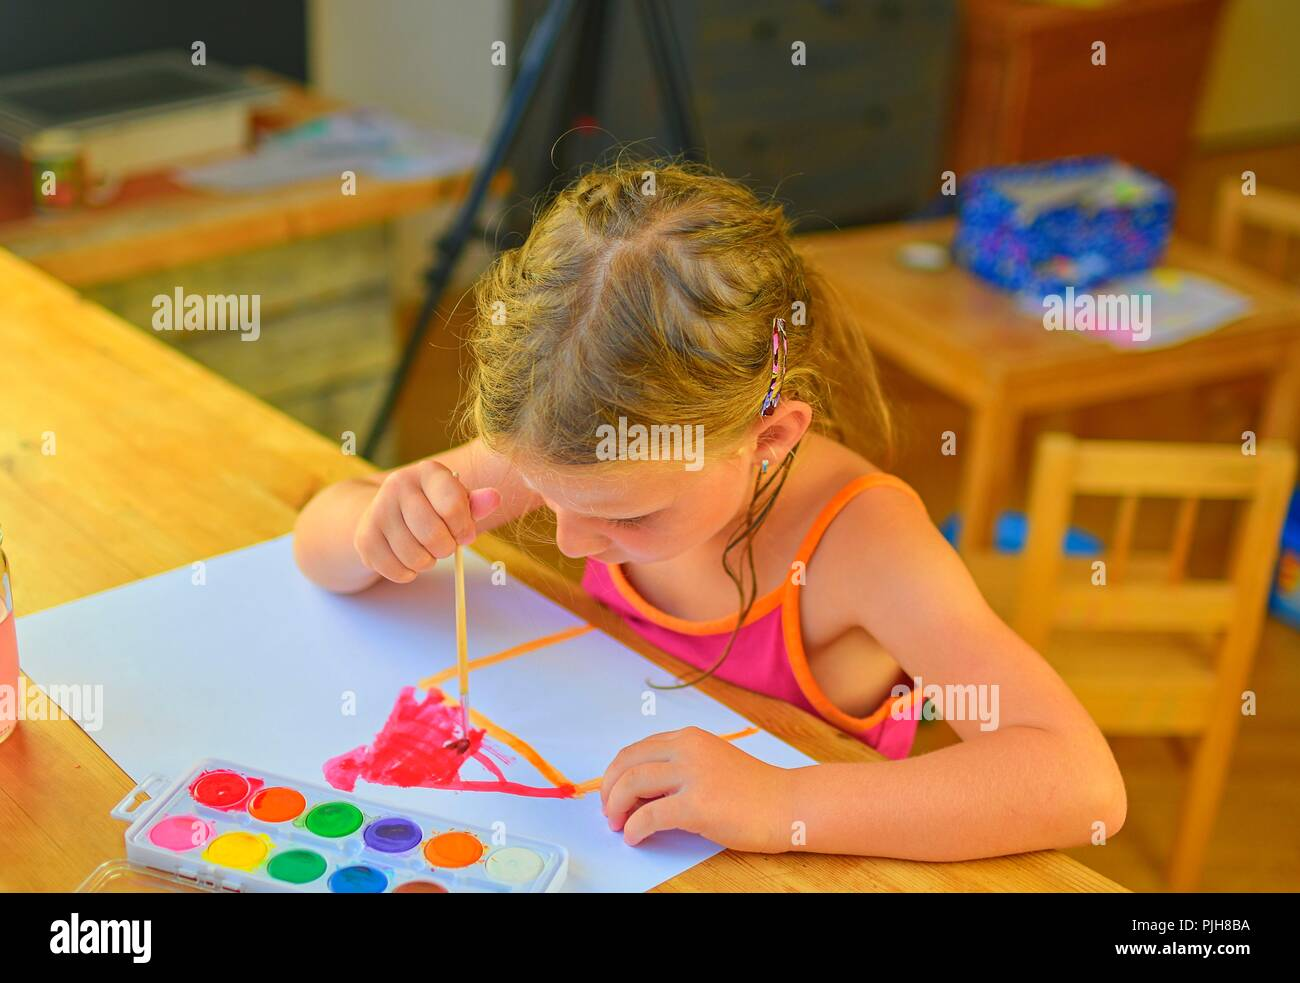 Little cute girl painting at her home. Selective focus and small depth of field - Stock Image